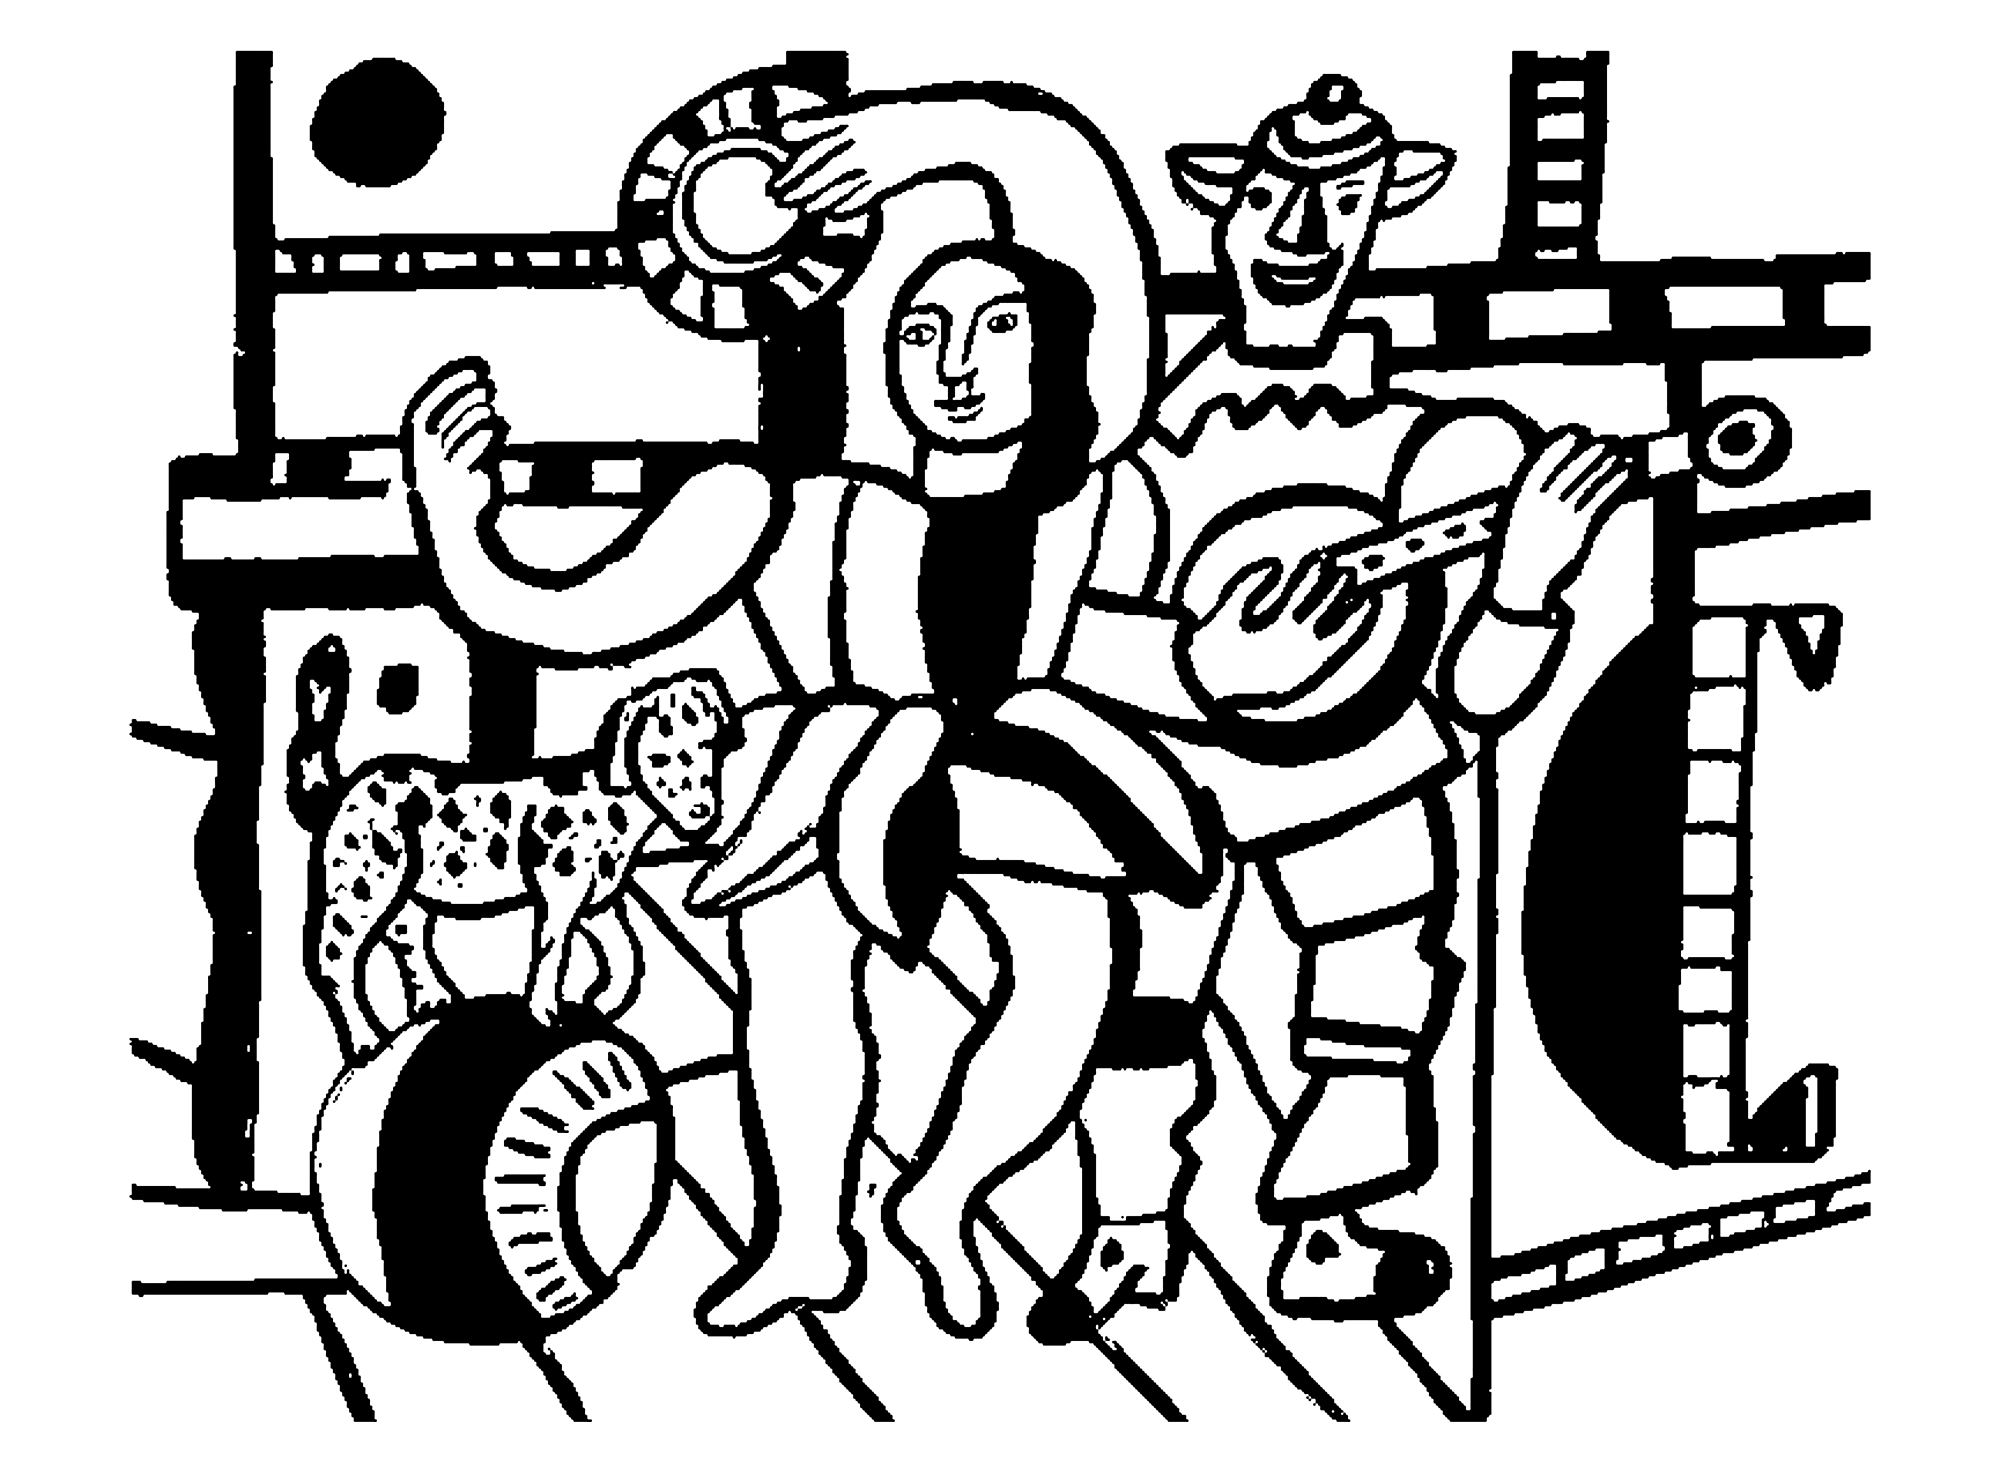 Fernand leger the dog on the ball - Image with : Fernand Leger